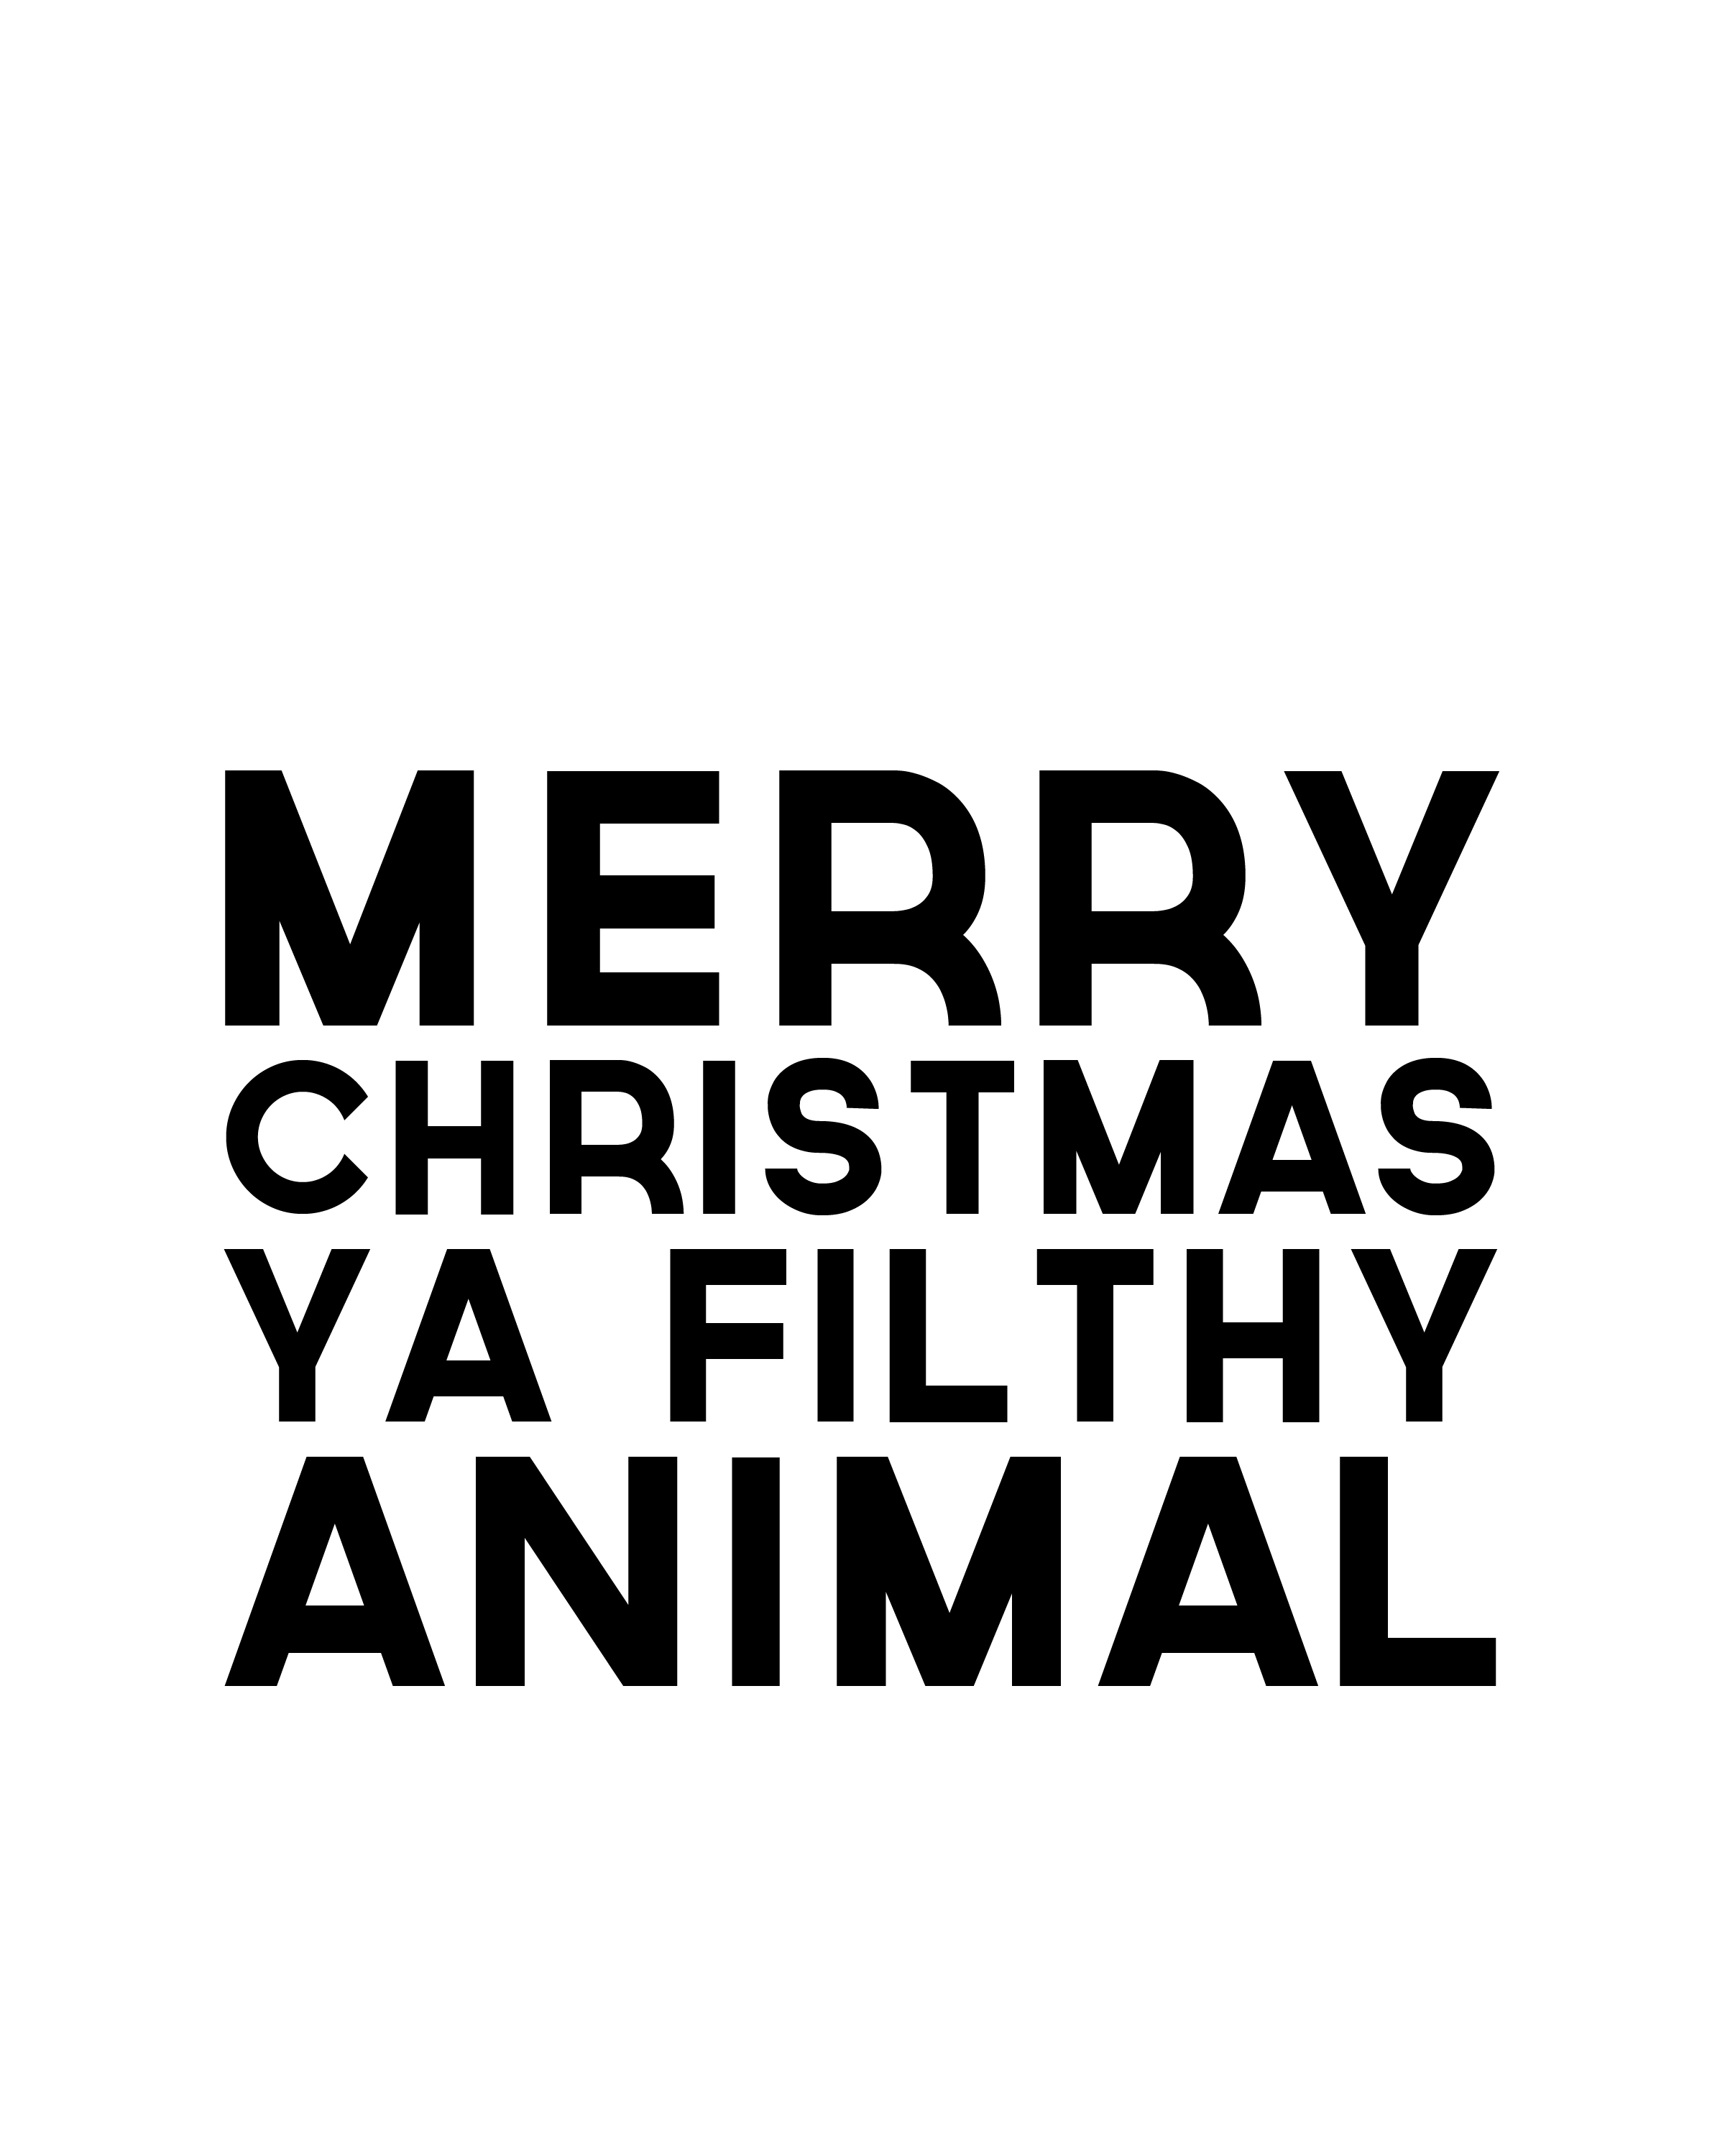 click here - Merry Christmas Ya Filthy Animal